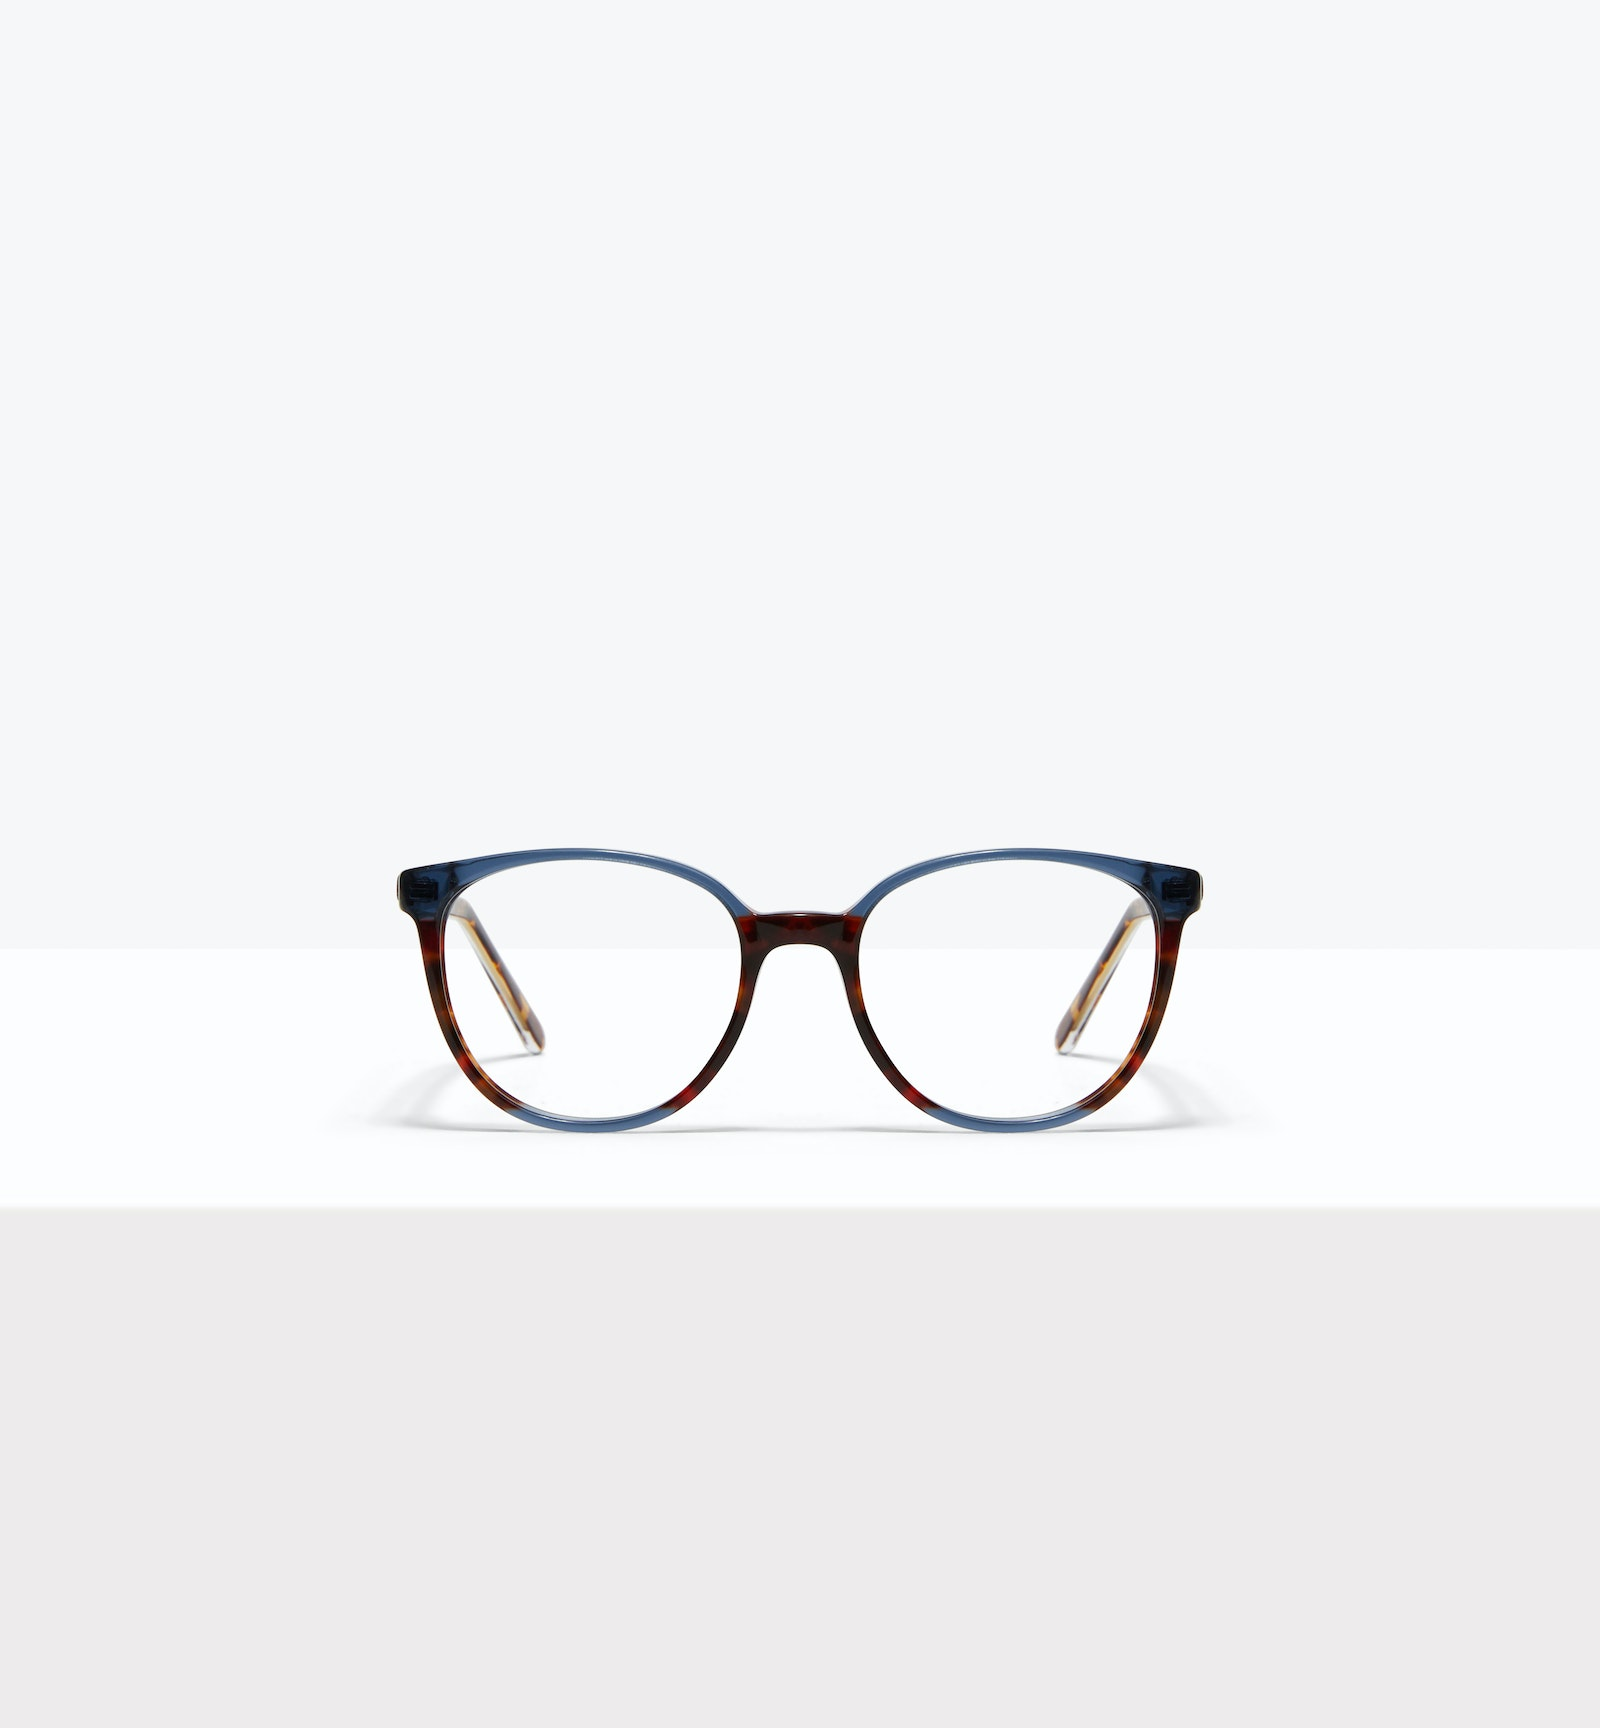 Affordable Fashion Glasses Round Eyeglasses Women Fauna Atlantic